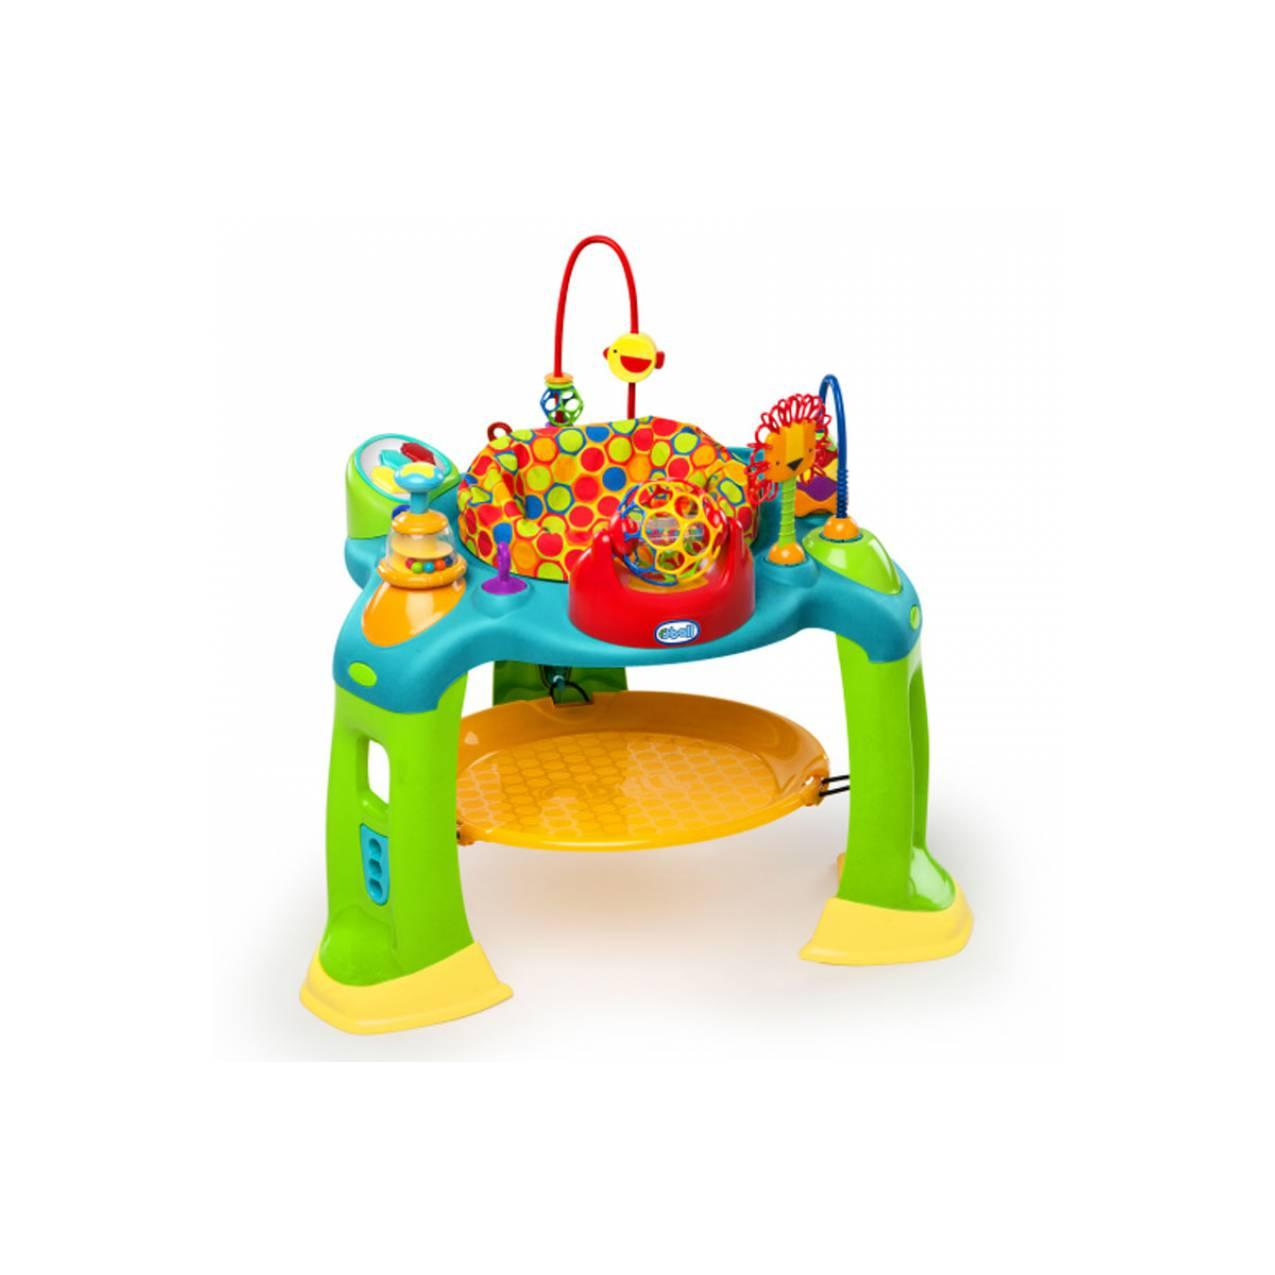 Oball Bounce OBunch Activity Center 60550